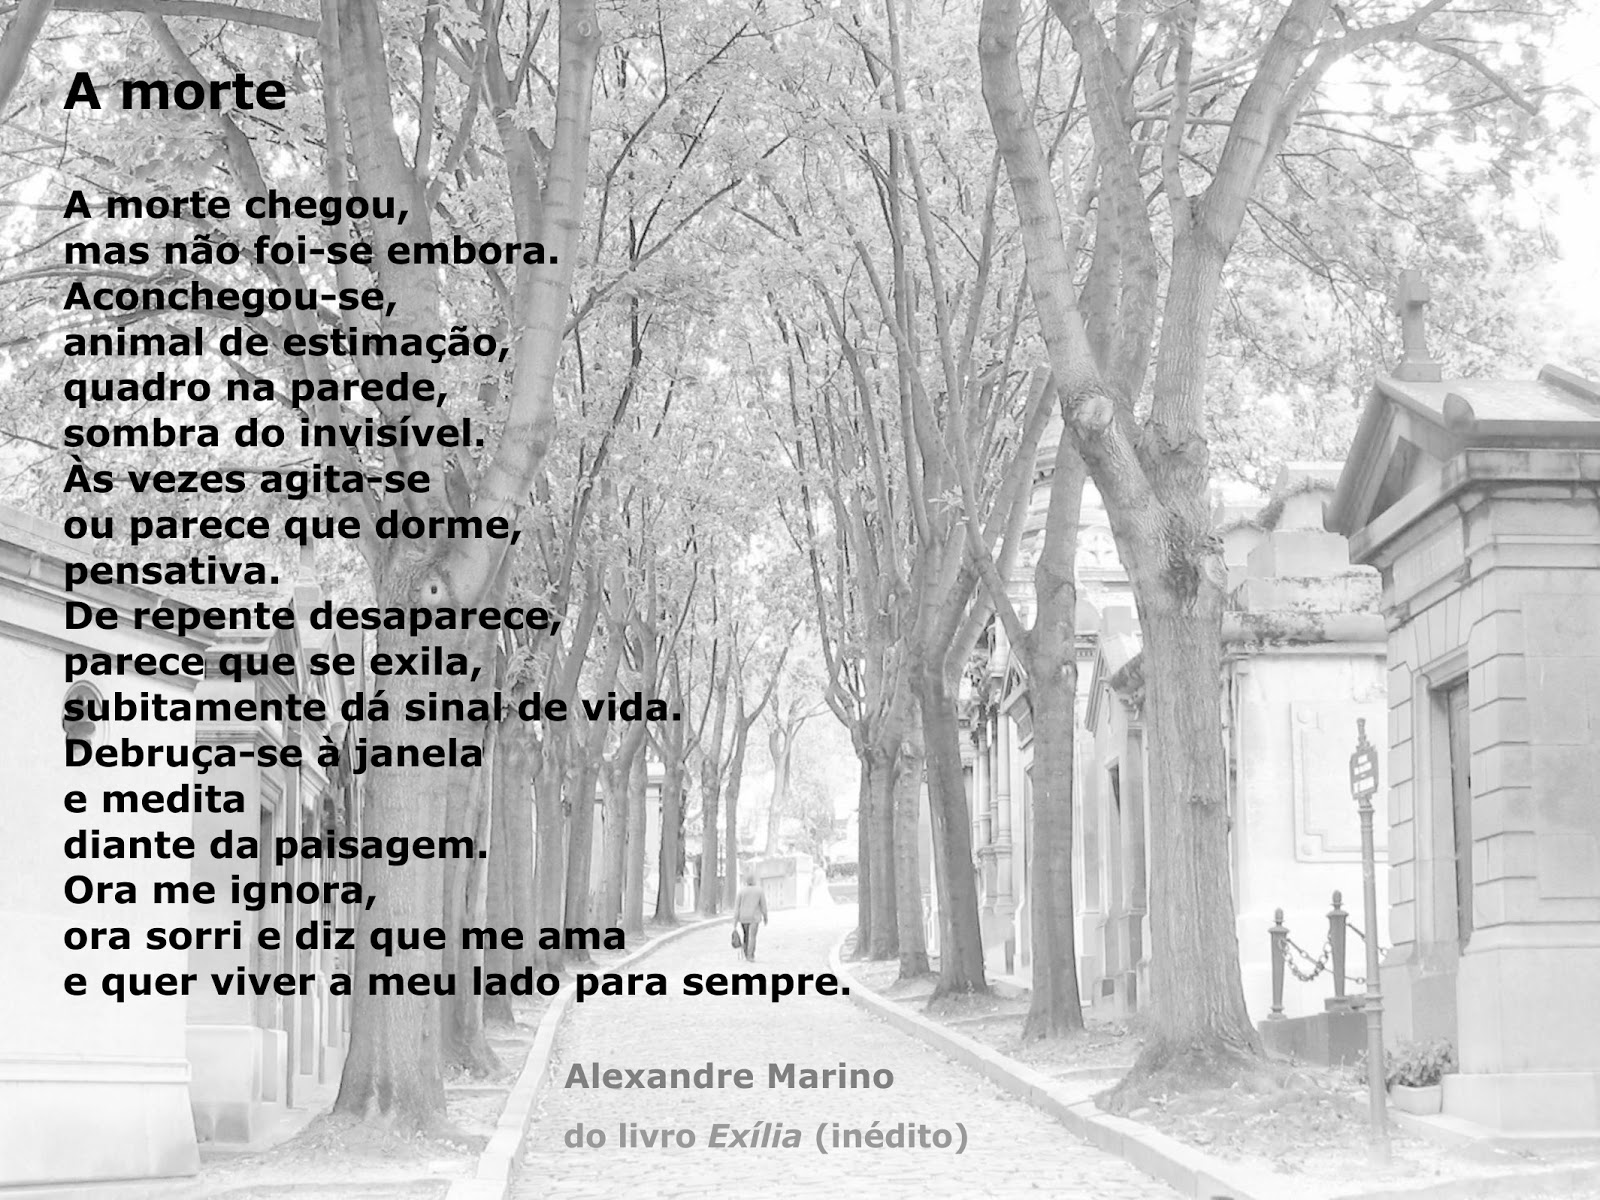 Top Poesia Nômade: [poema] A MORTE IY37